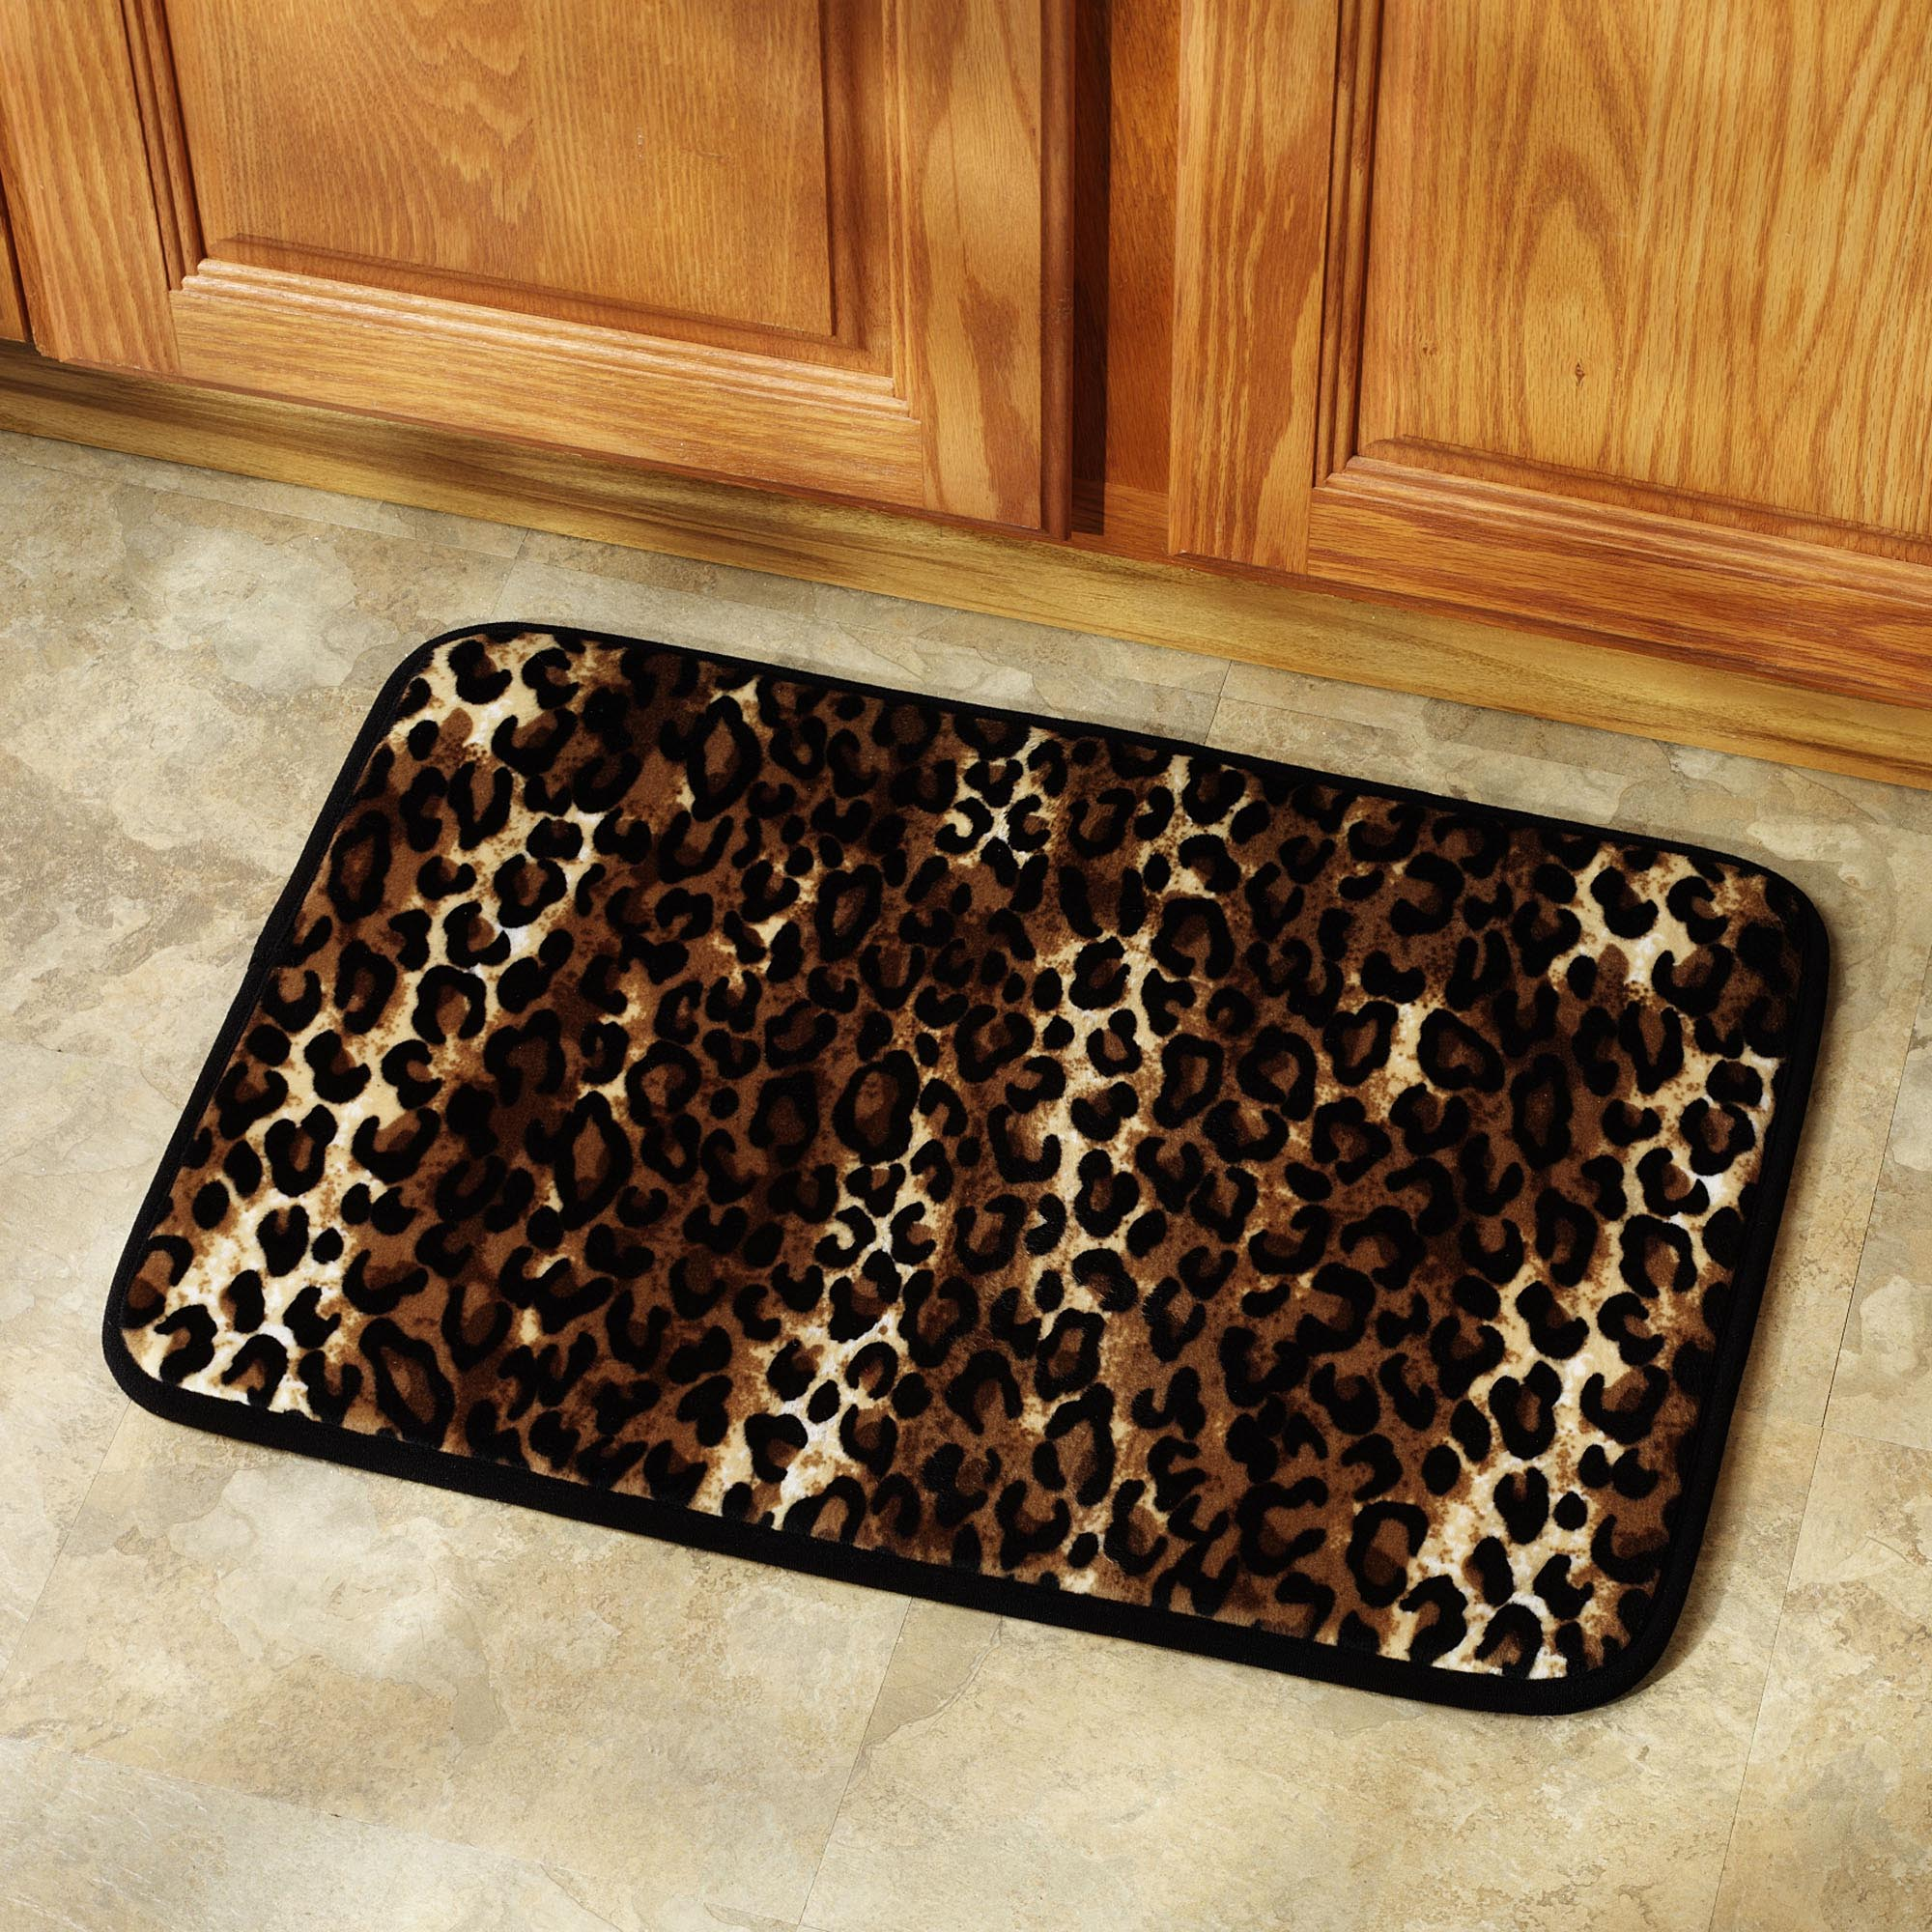 Leopard Print Rug In Your Home Best Decor Things